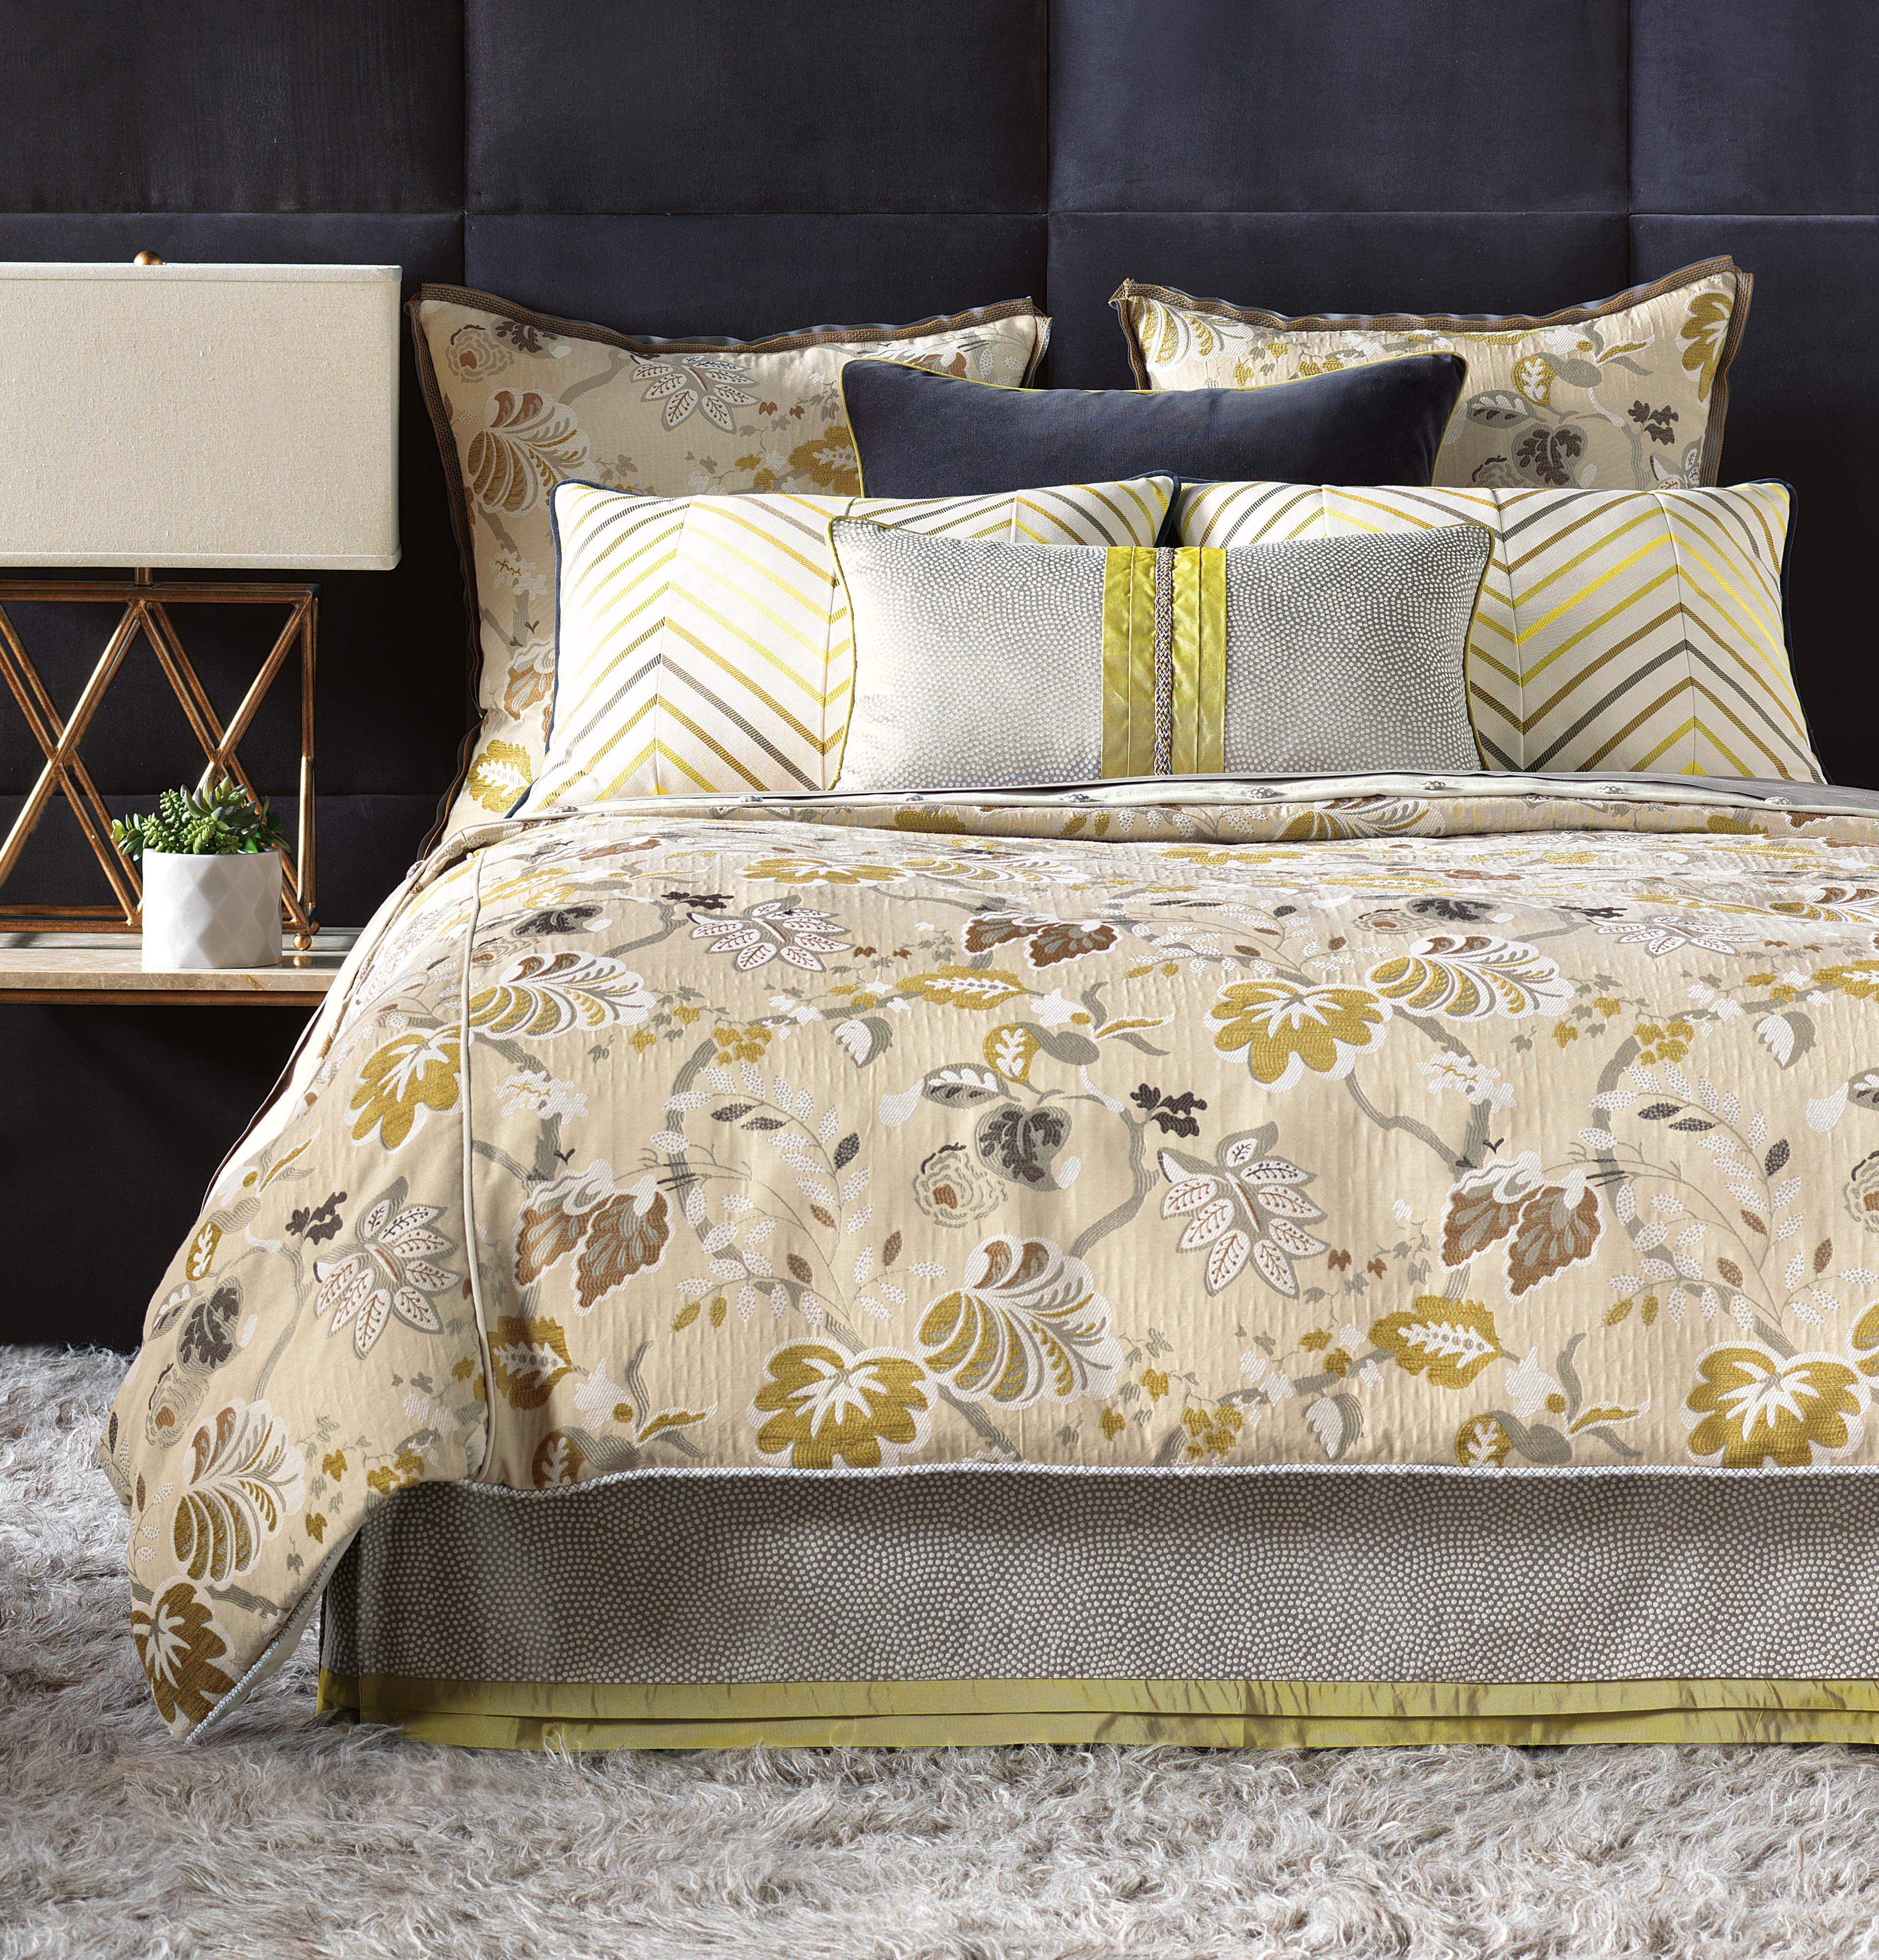 Caldwell Twin Bed Skirt by Eastern Accents at Alison Craig Home Furnishings